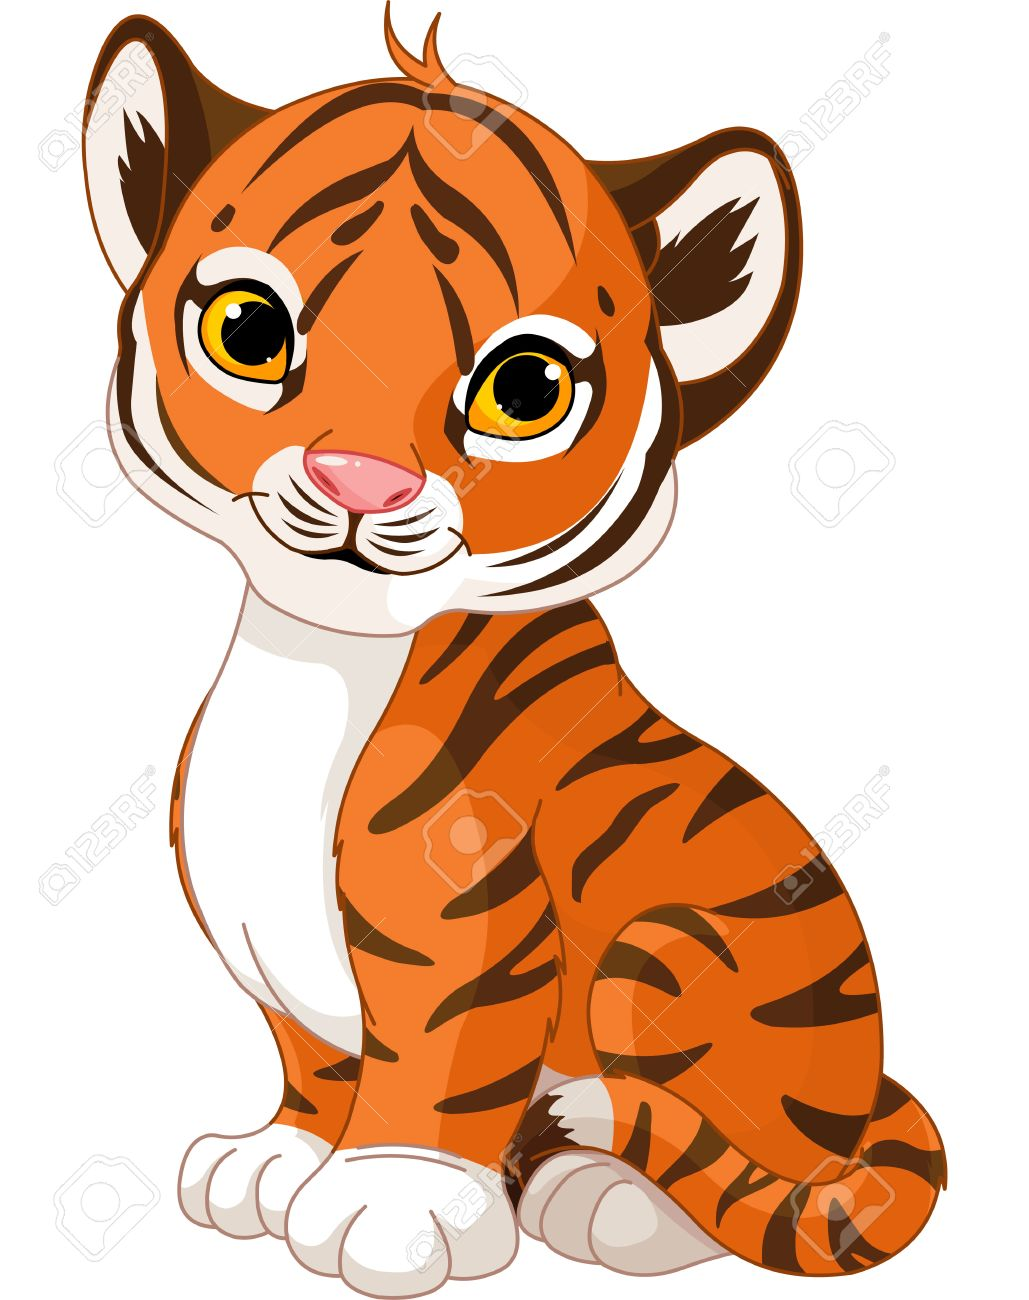 Illustration Of Cute Little Tiger Royalty Free Cliparts, Vectors.